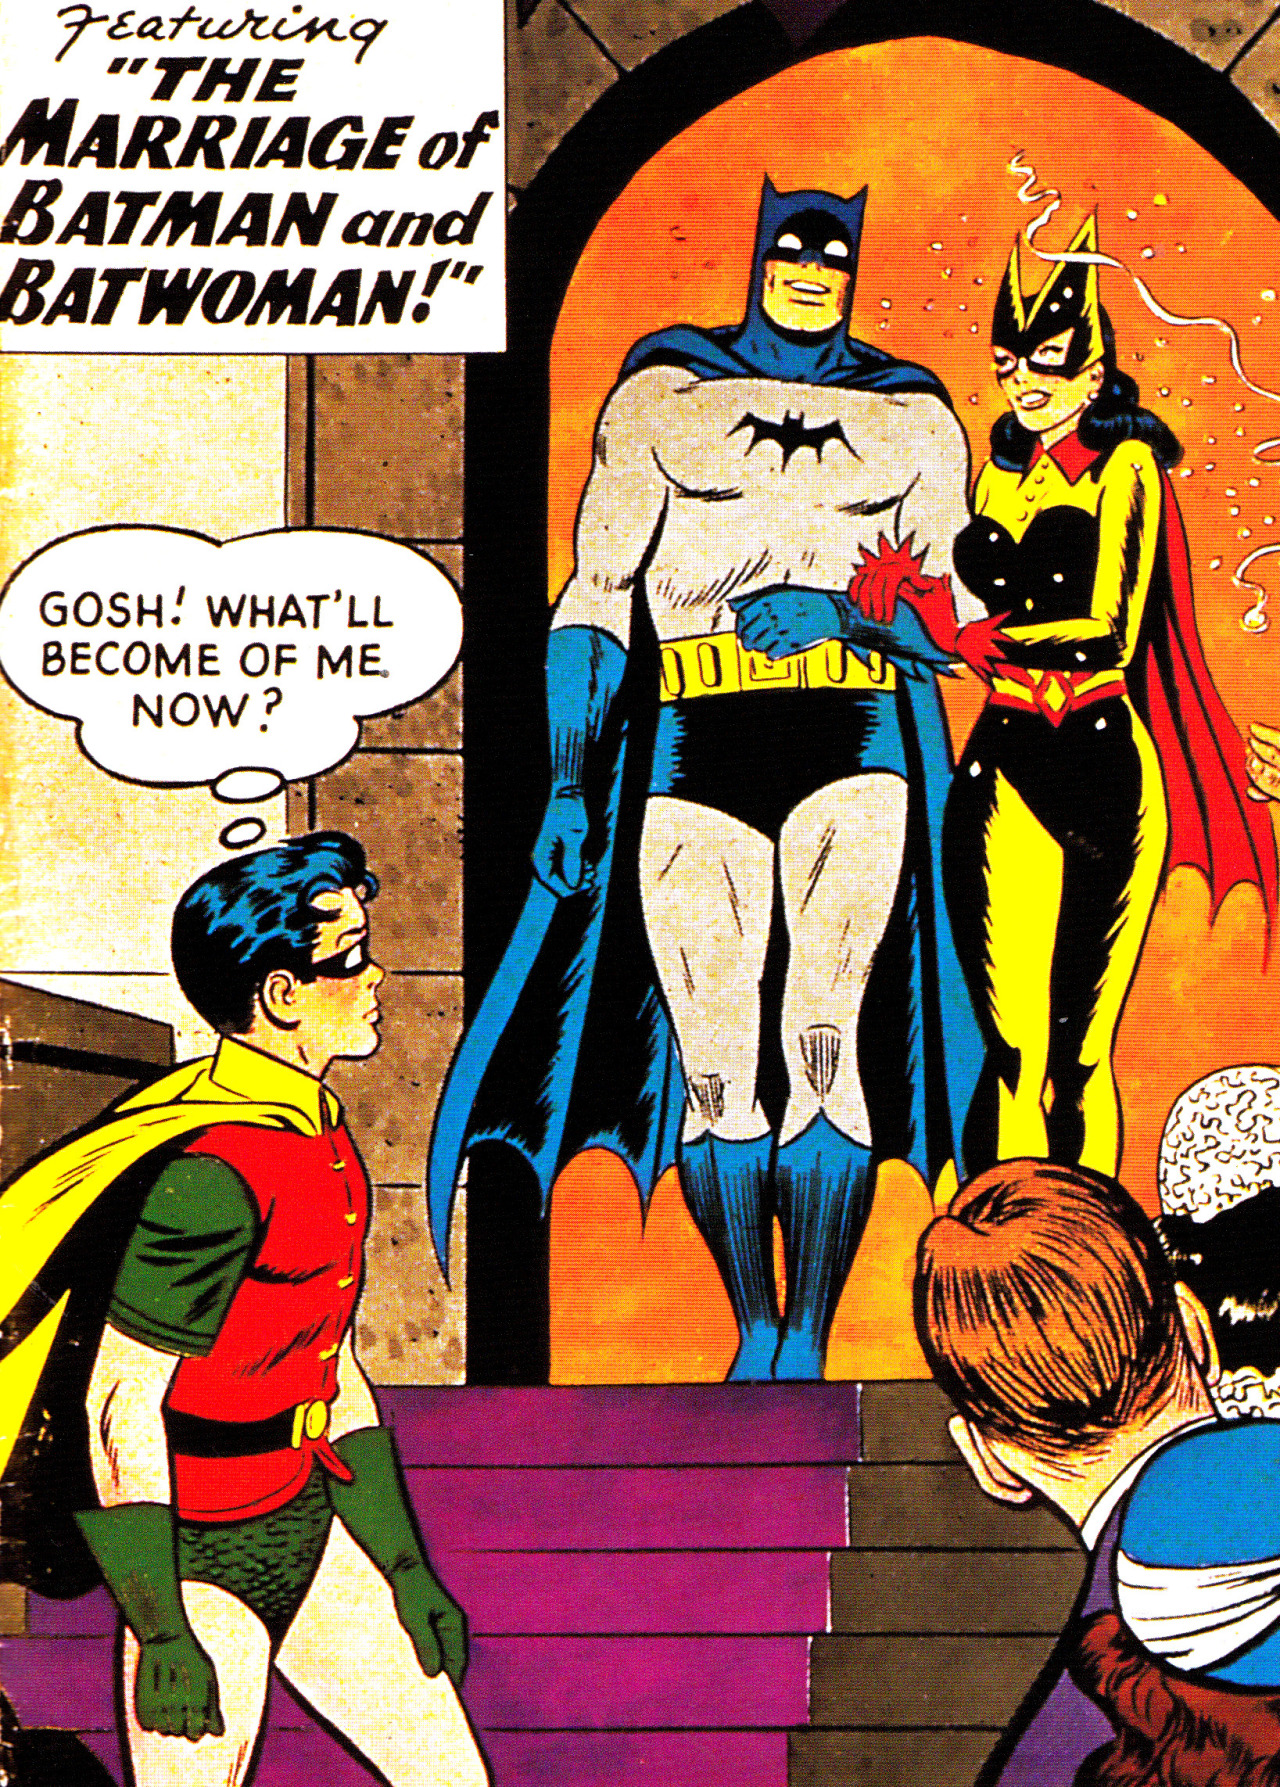 jthenr-comics-vault:  Batman #122 (March 1959)Art by Curt Swan (Pencils) & Stan Kaye (Inks)